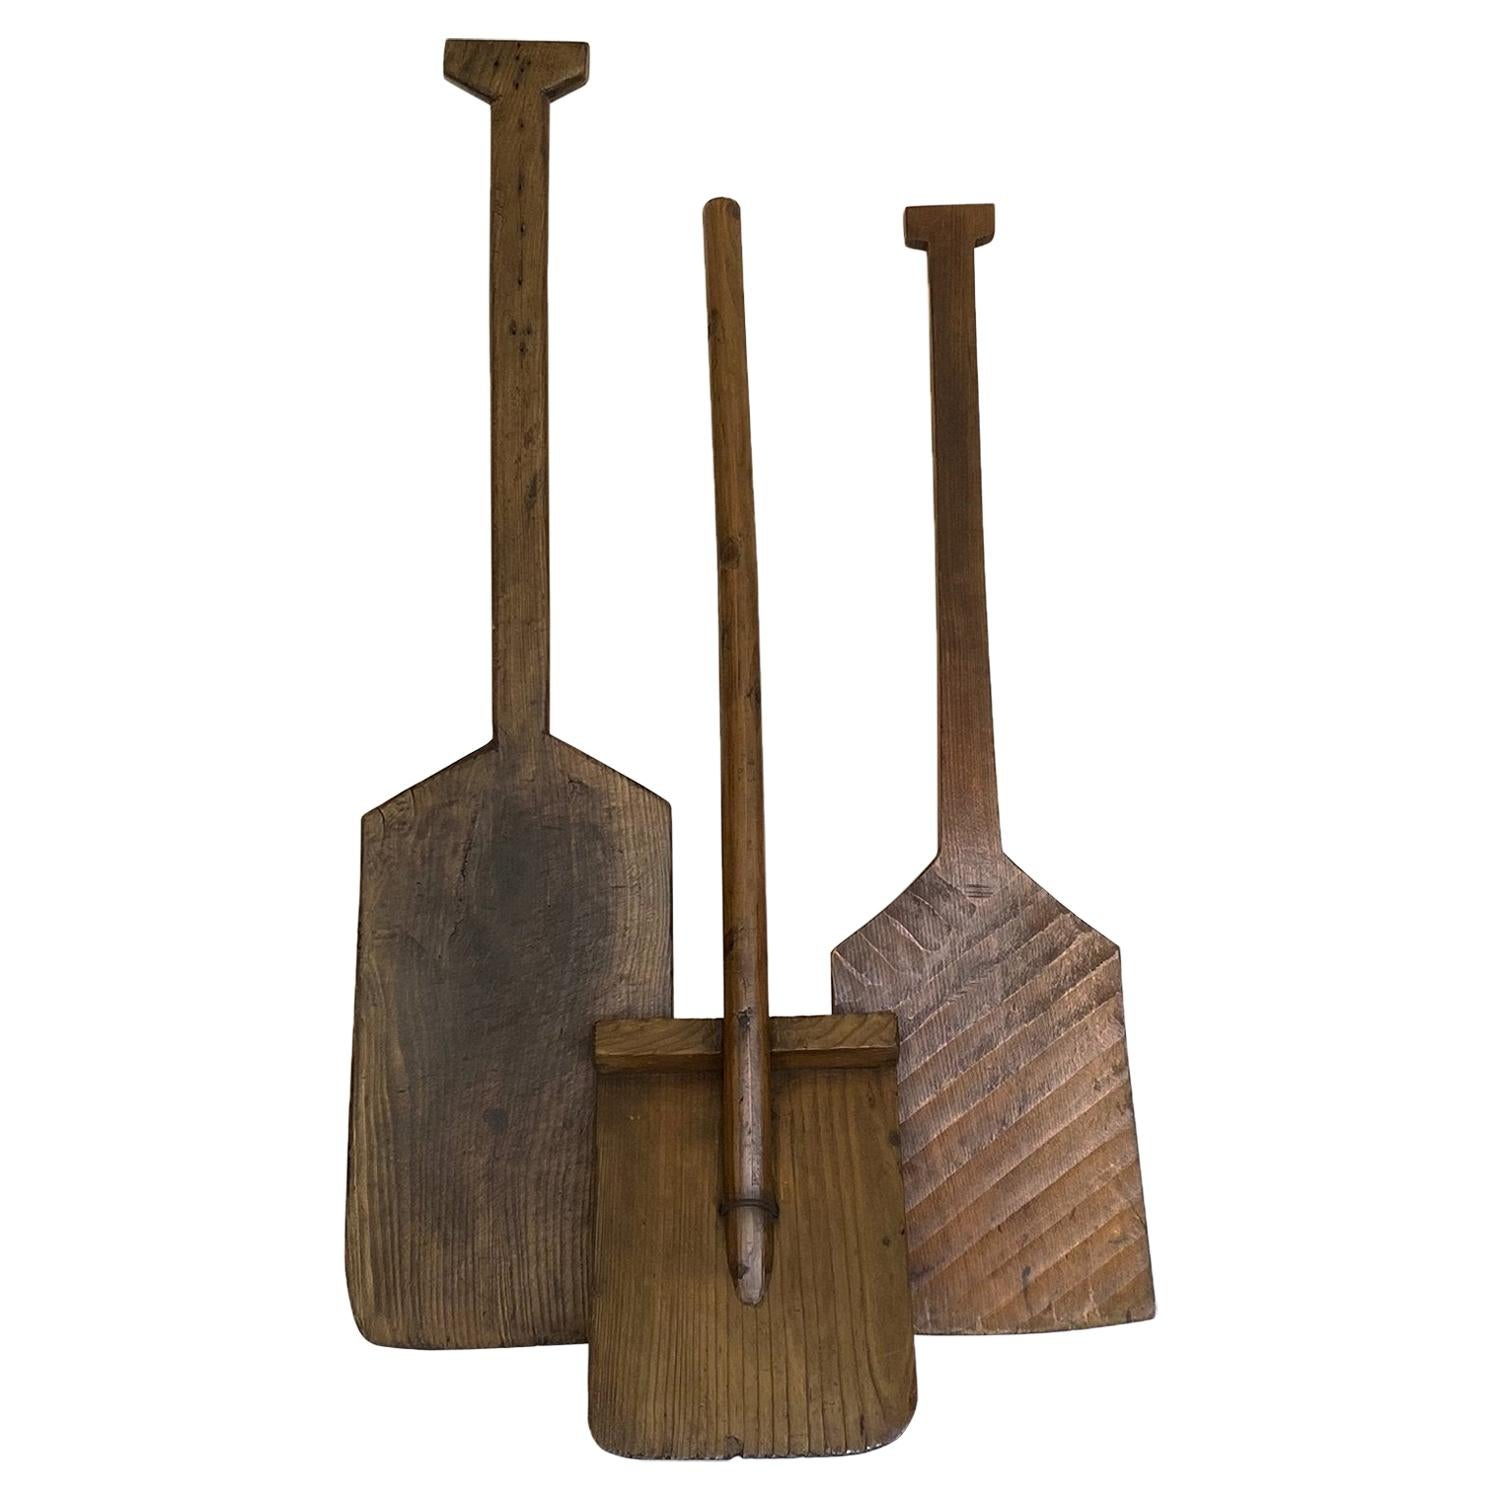 Early 20th Century Antique Wood Snow Shovels, Japan, Set of Three '3'